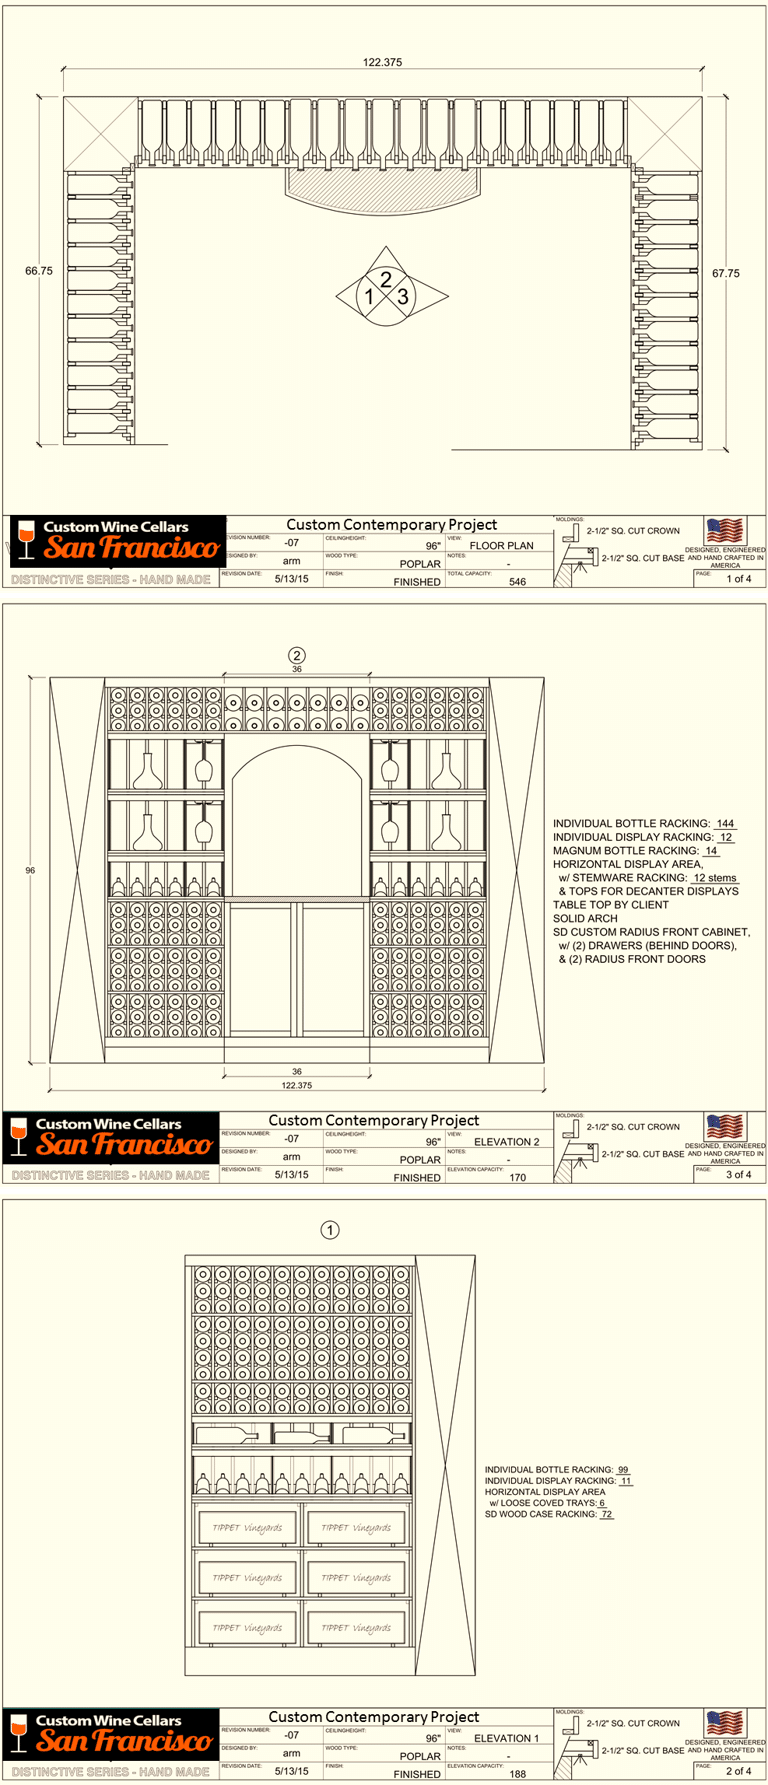 Starting a residential wine cellar in san francisco for Wine cellar plans